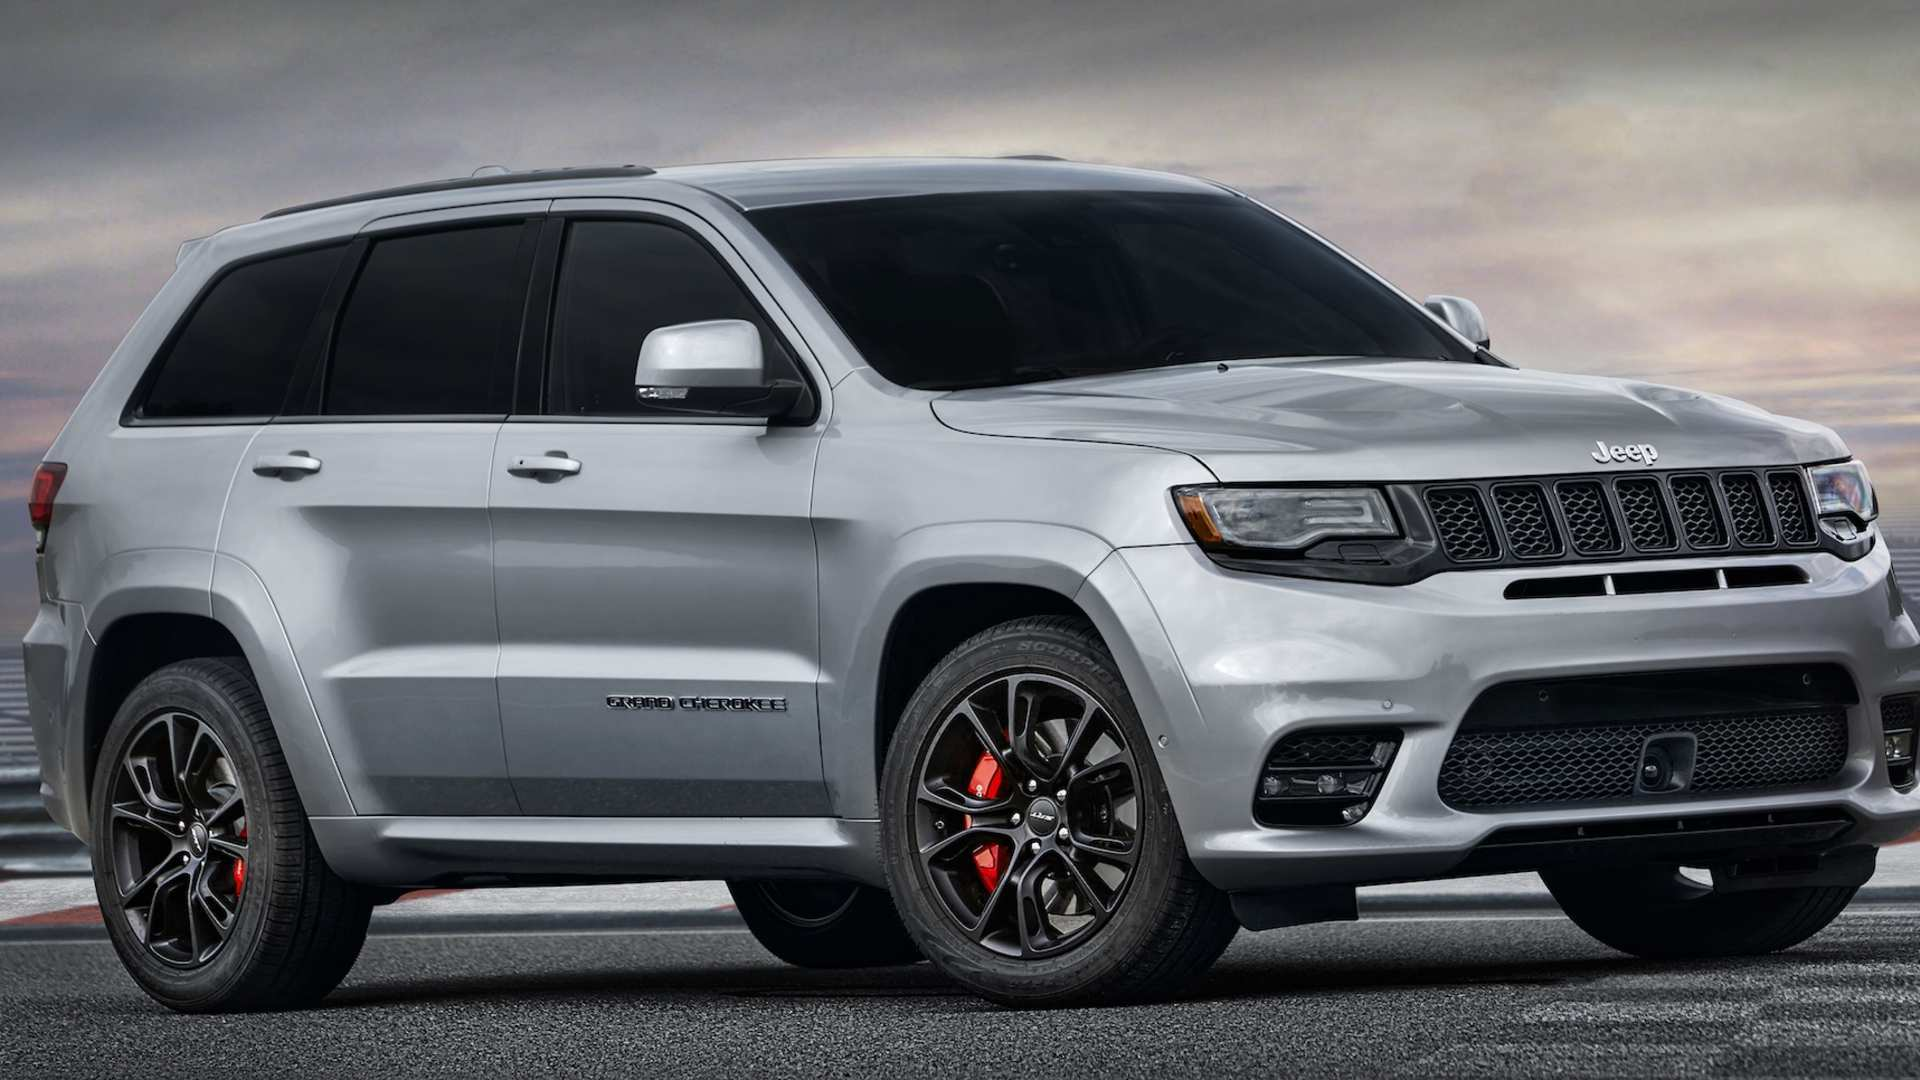 77 All New 2020 Grand Cherokee Srt Hellcat Speed Test